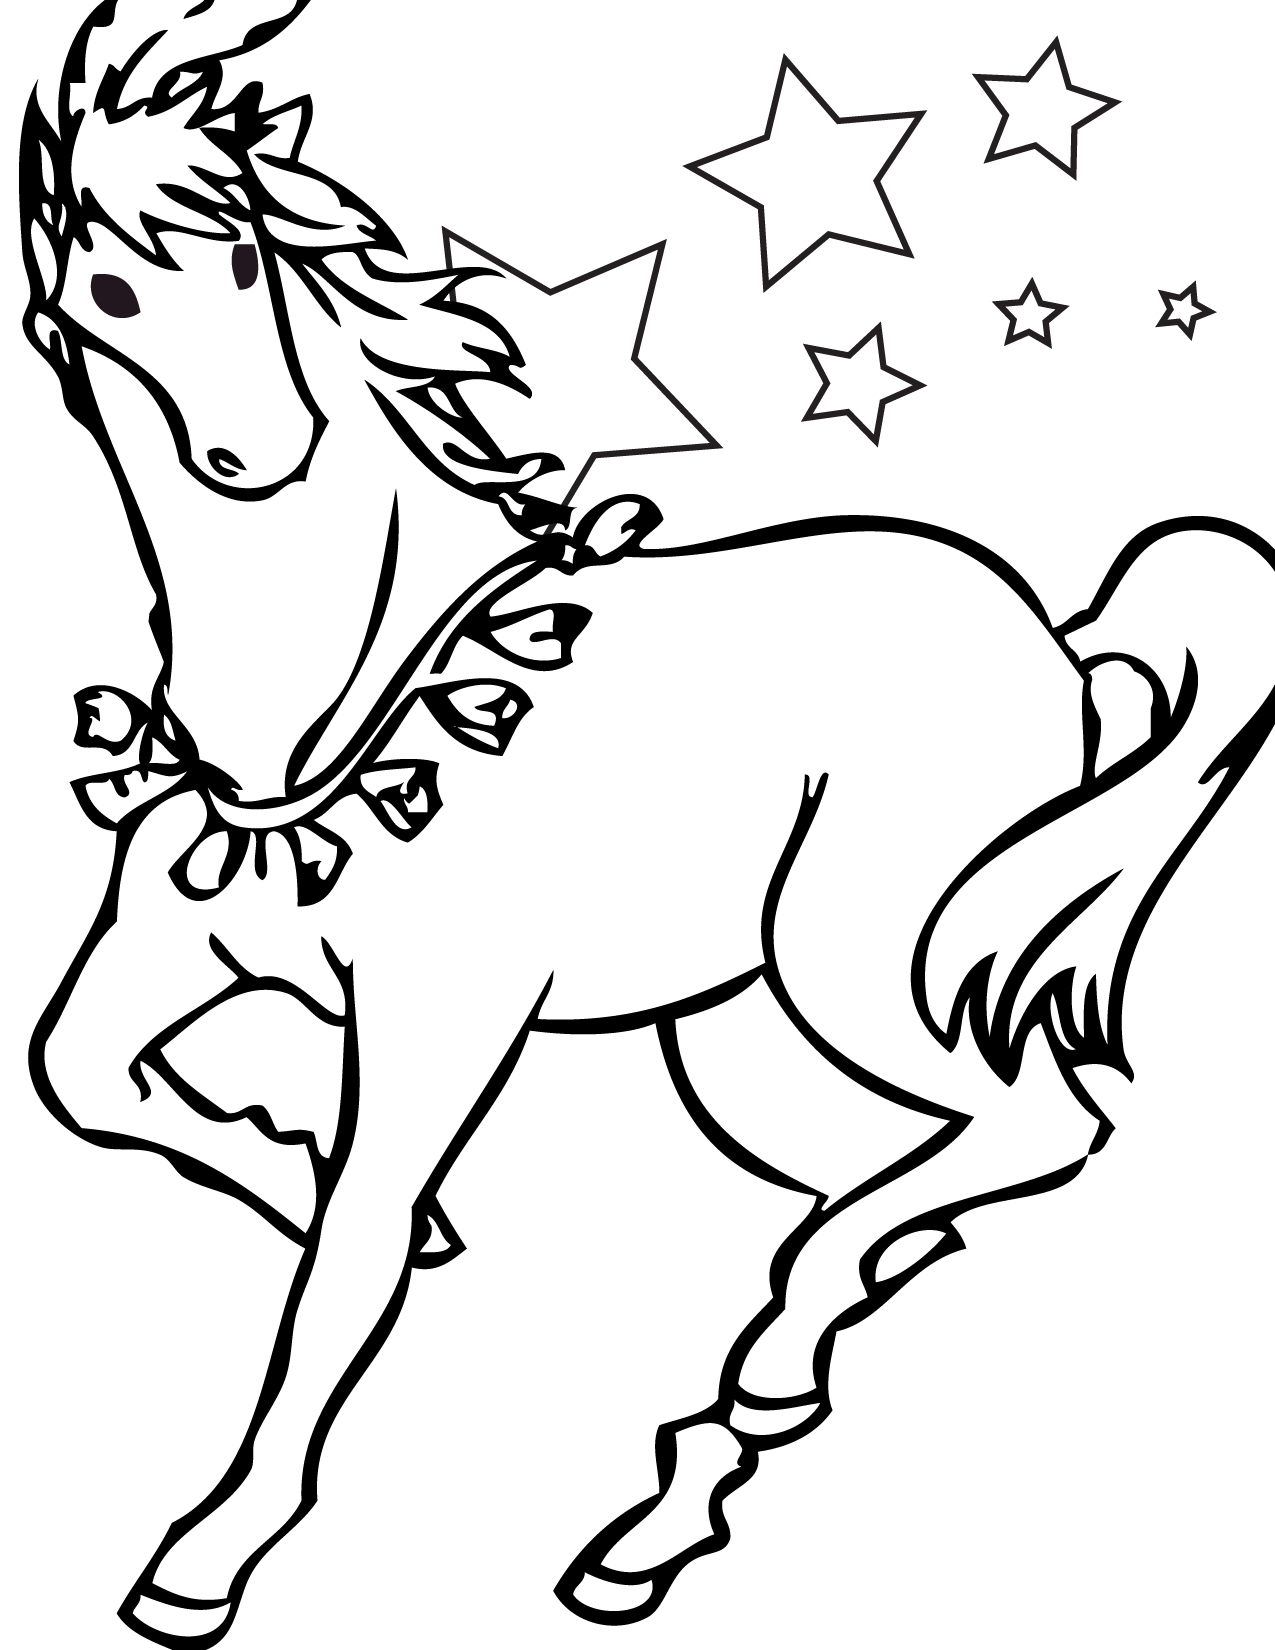 free coloring pages of horses - Coloring Pages Horse